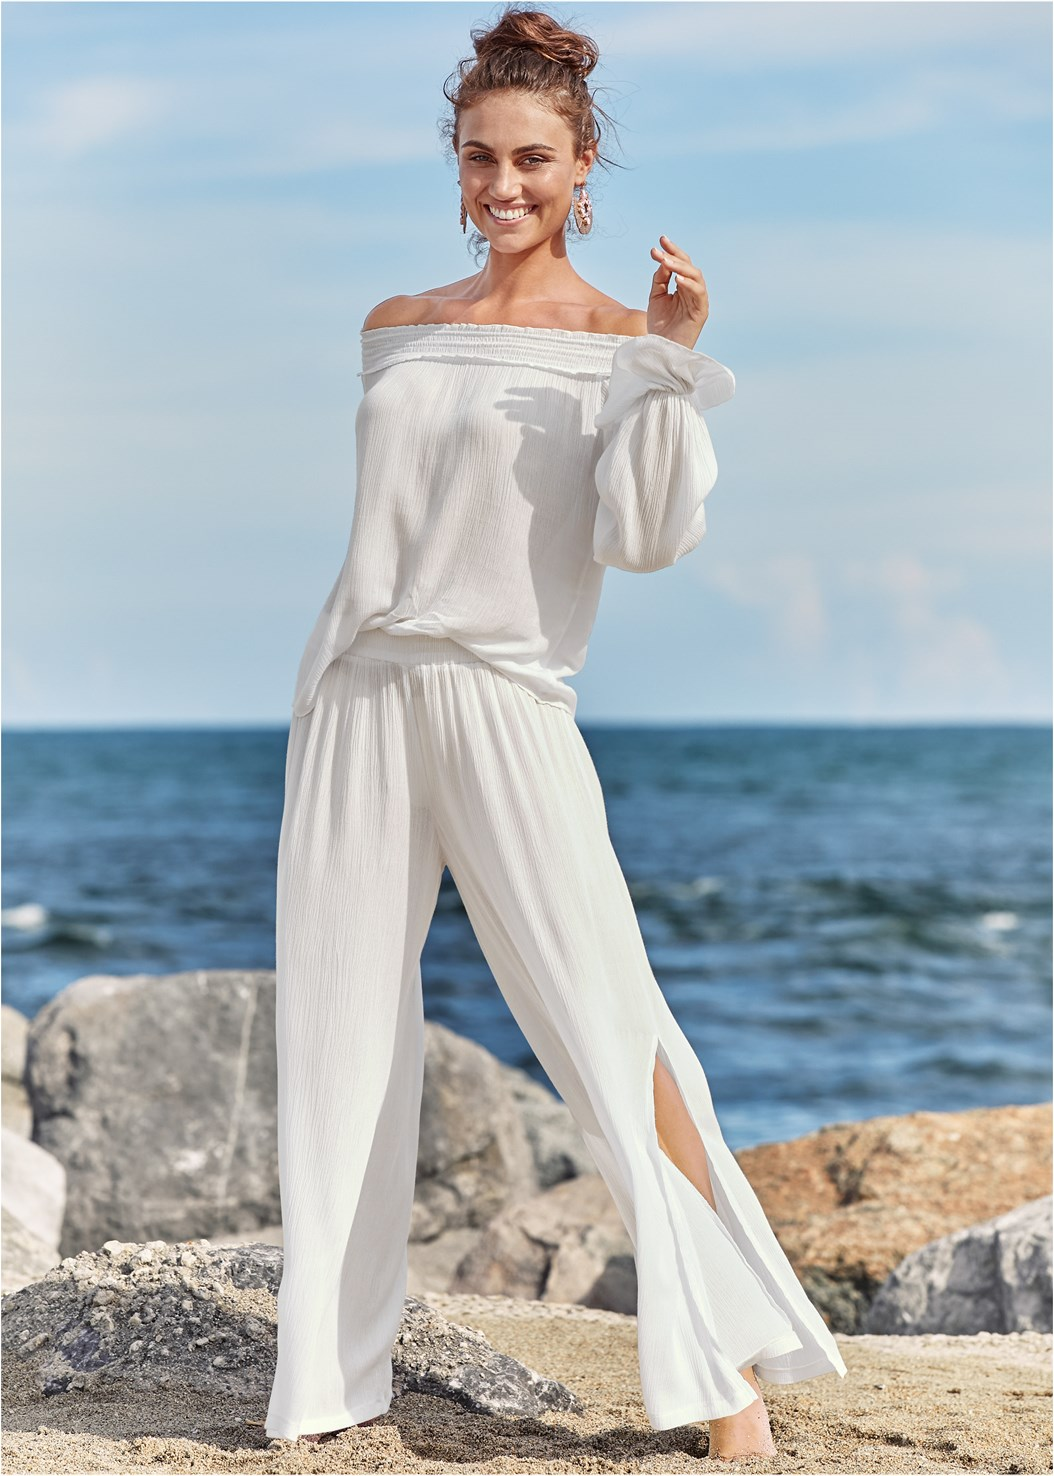 Side Slit Cover-Up Pant,Off Shoulder Cover-Up Top,V Front Bandeau Top,High Waist Moderate Bottom,Belted Strap One-Piece,Strappy Toe Ring Sandals,Faux Leather Jewel Earring